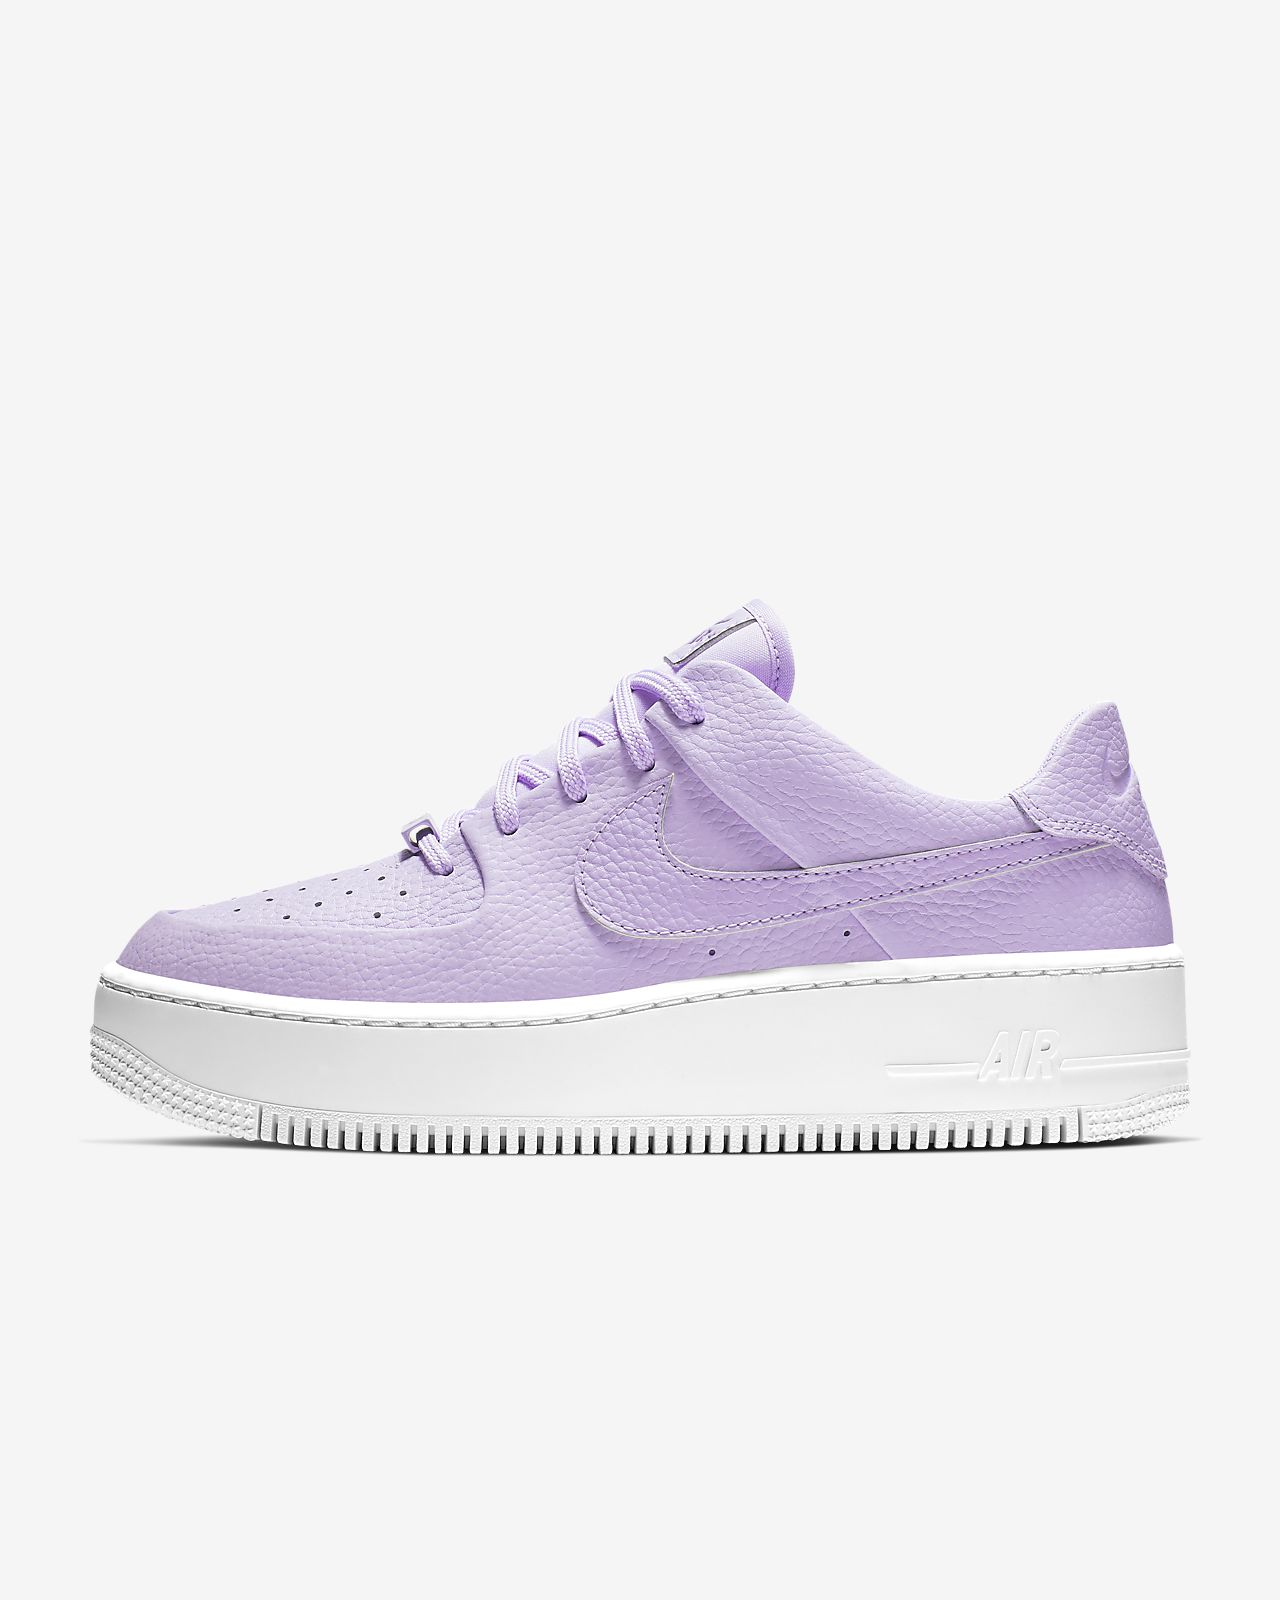 official photos 3536d e793b ... Chaussure Nike Air Force 1 Sage Low pour Femme